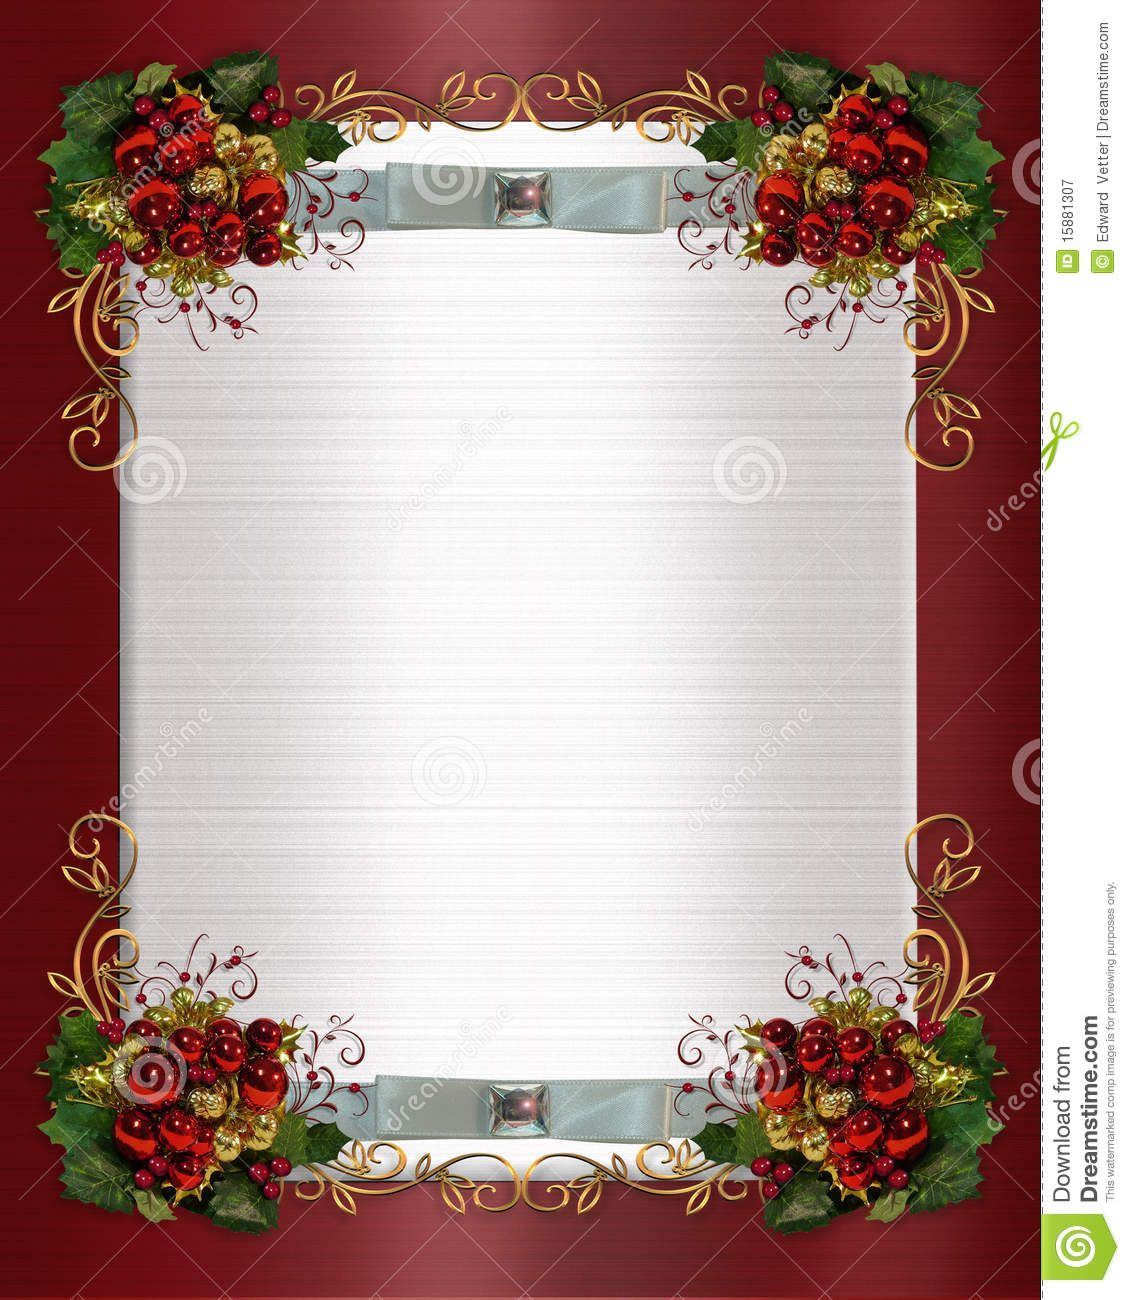 christmas dinner invitation template free, Party invitations